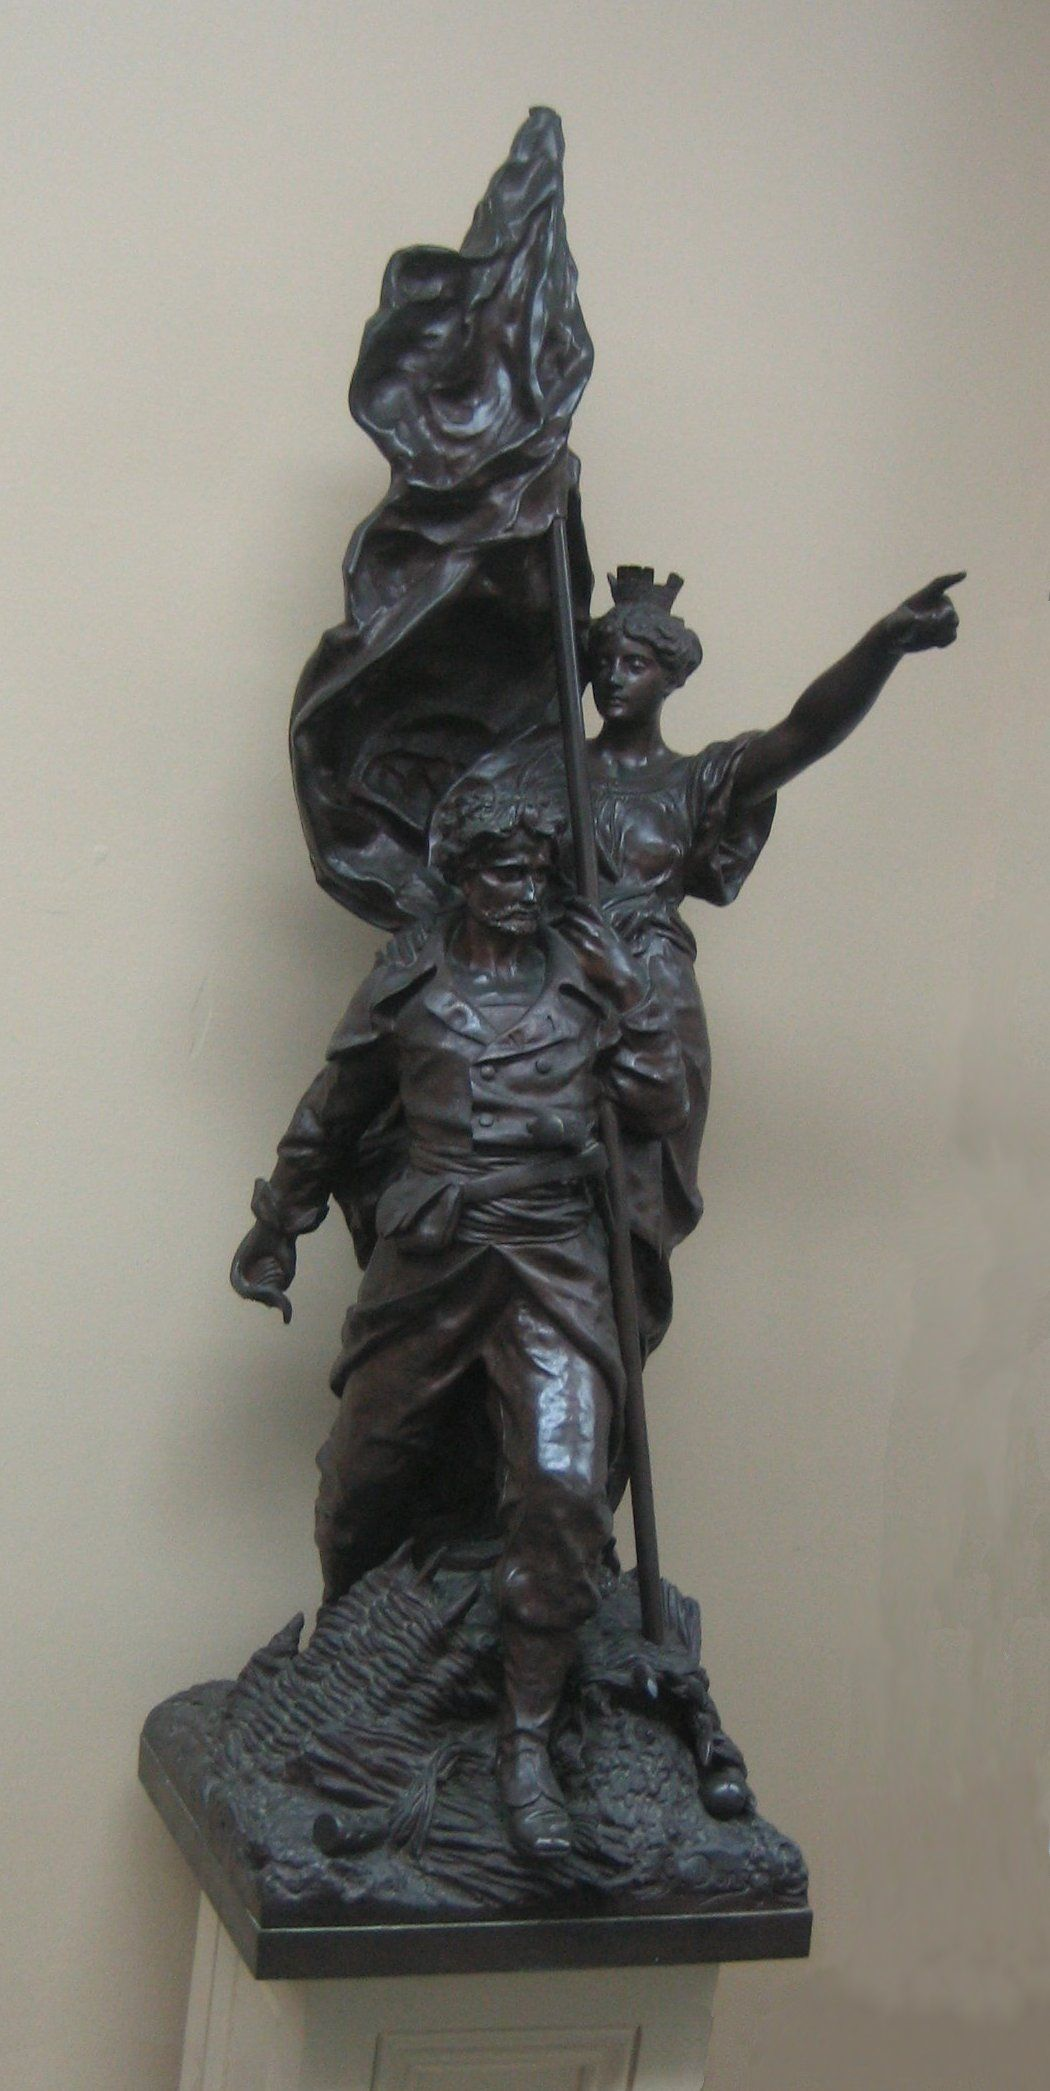 'Le_Defense_Nationale',_bronze_sculpture_by_Gustave_Doré_(1832-83),_Rosenberg_Library,_Galveston_Texas.JPG (1050×2091)